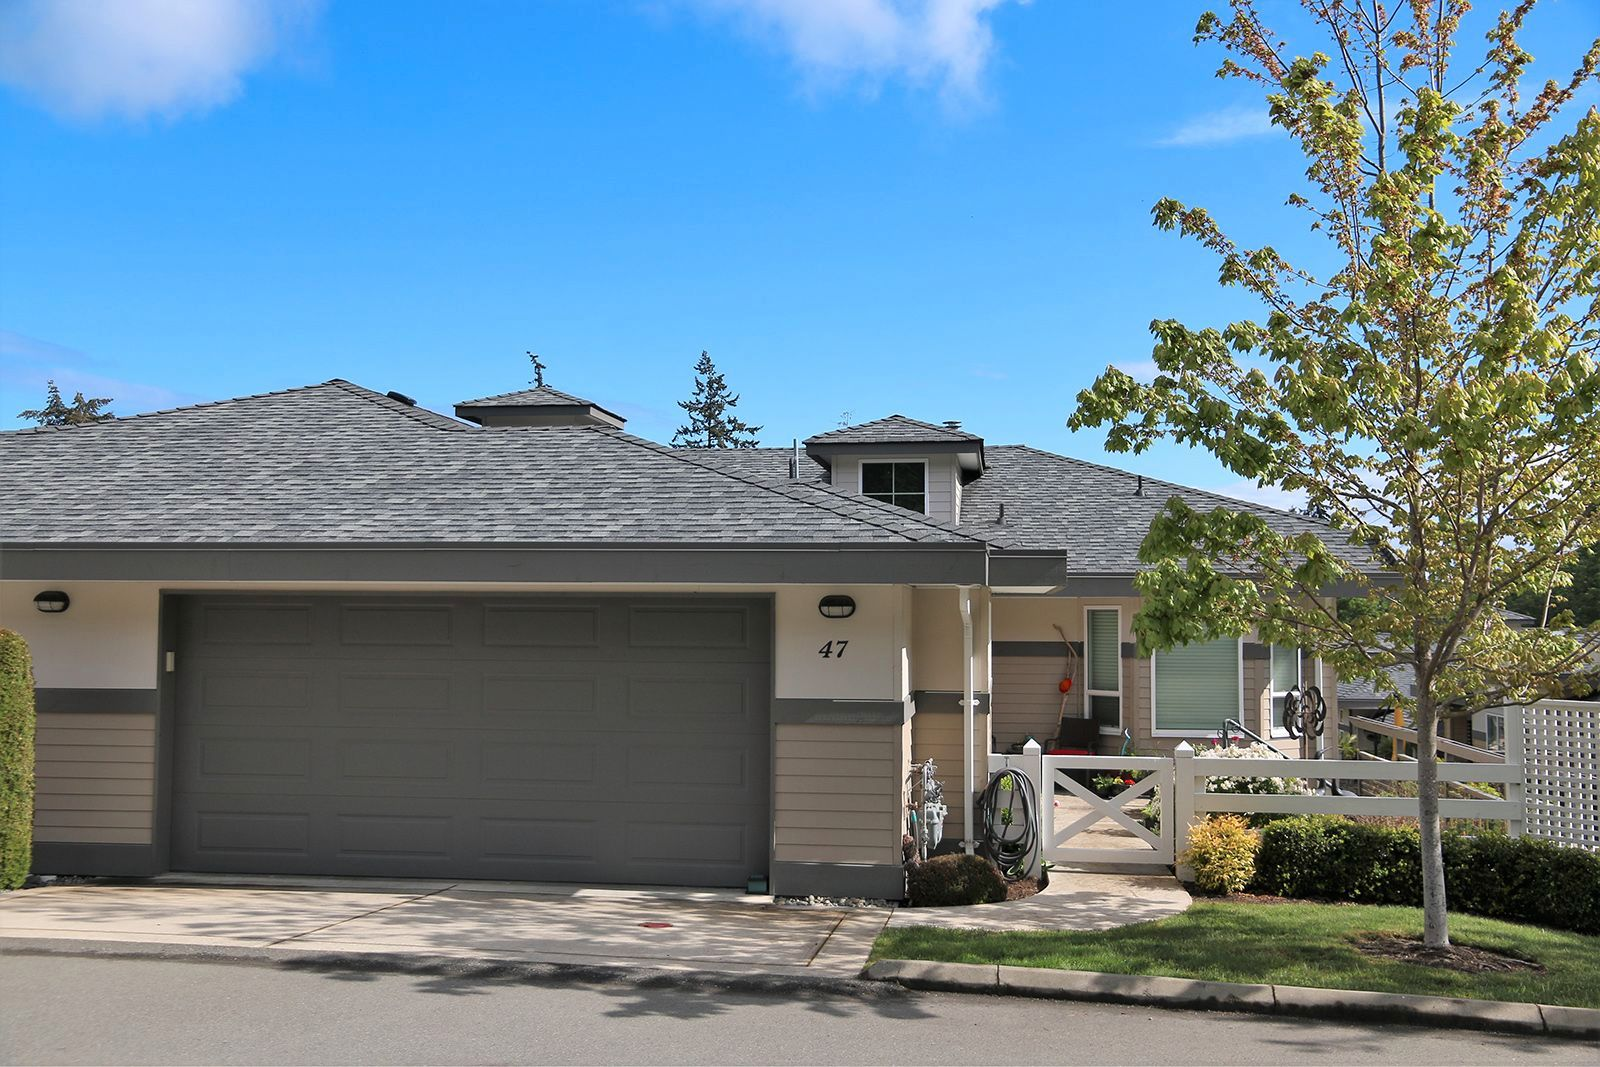 Main Photo: 47 500 S Corfield Street in Parksville: Otter District Townhouse for sale (Parksville/Qualicum)